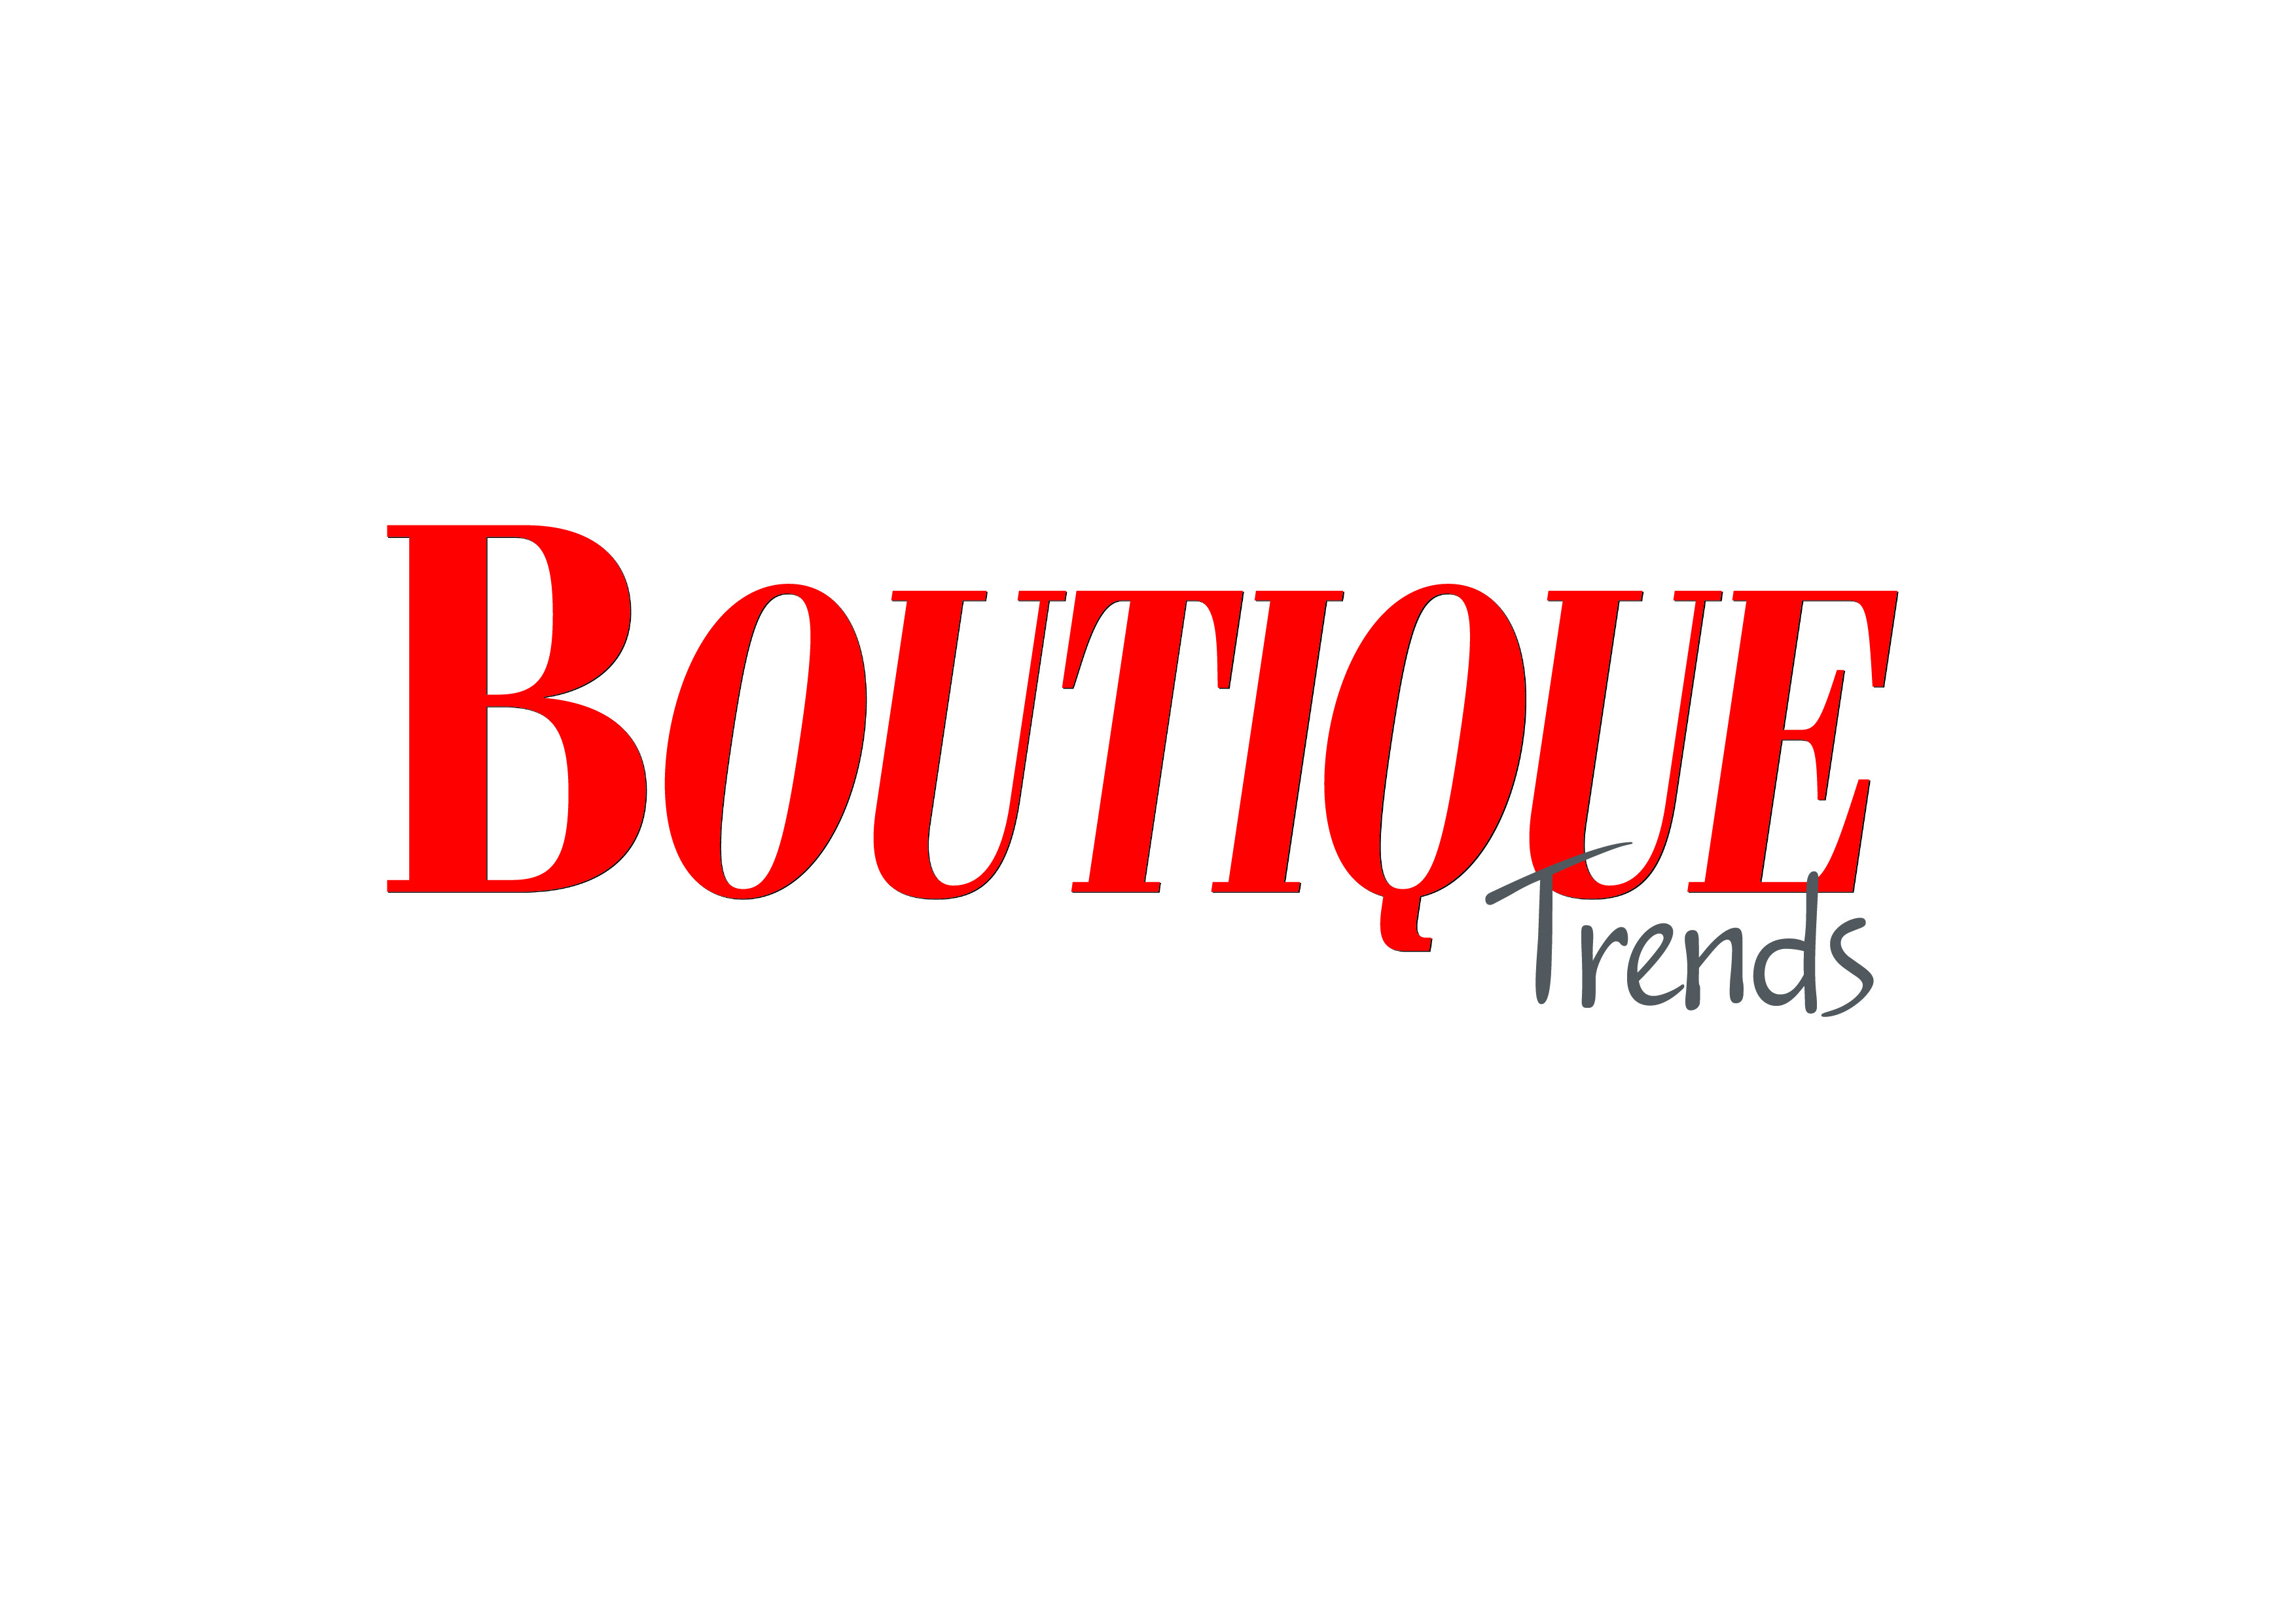 Логотип Boutique Trends